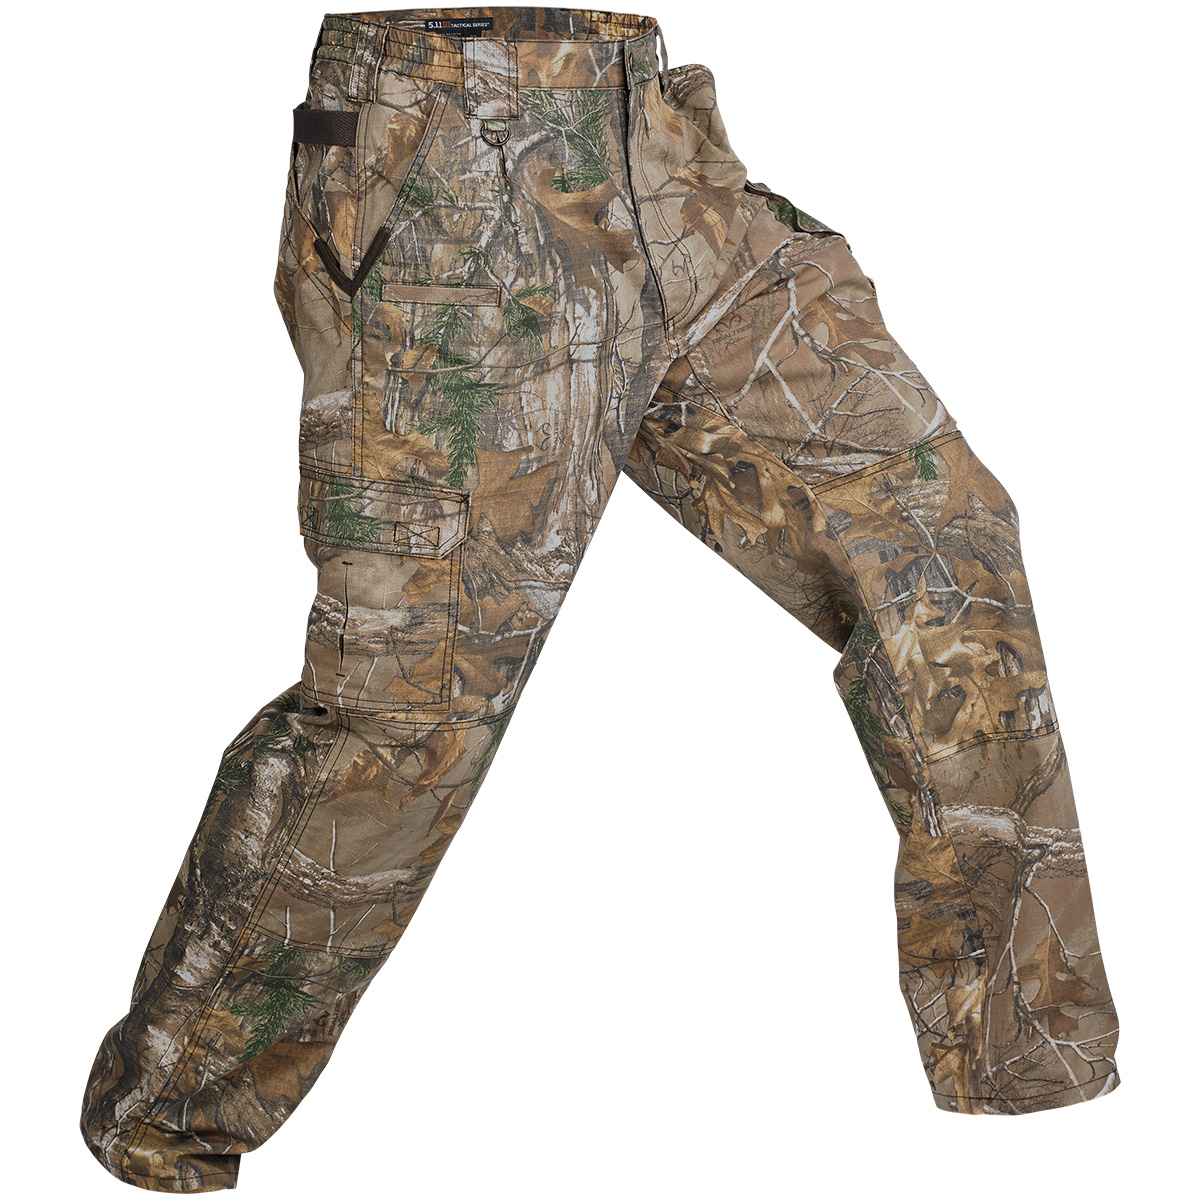 83c4510006a3d Sentinel 5.11 Mens Taclite Pro Military Combat Trousers Hunting Cargo Pants  RealTree Xtra